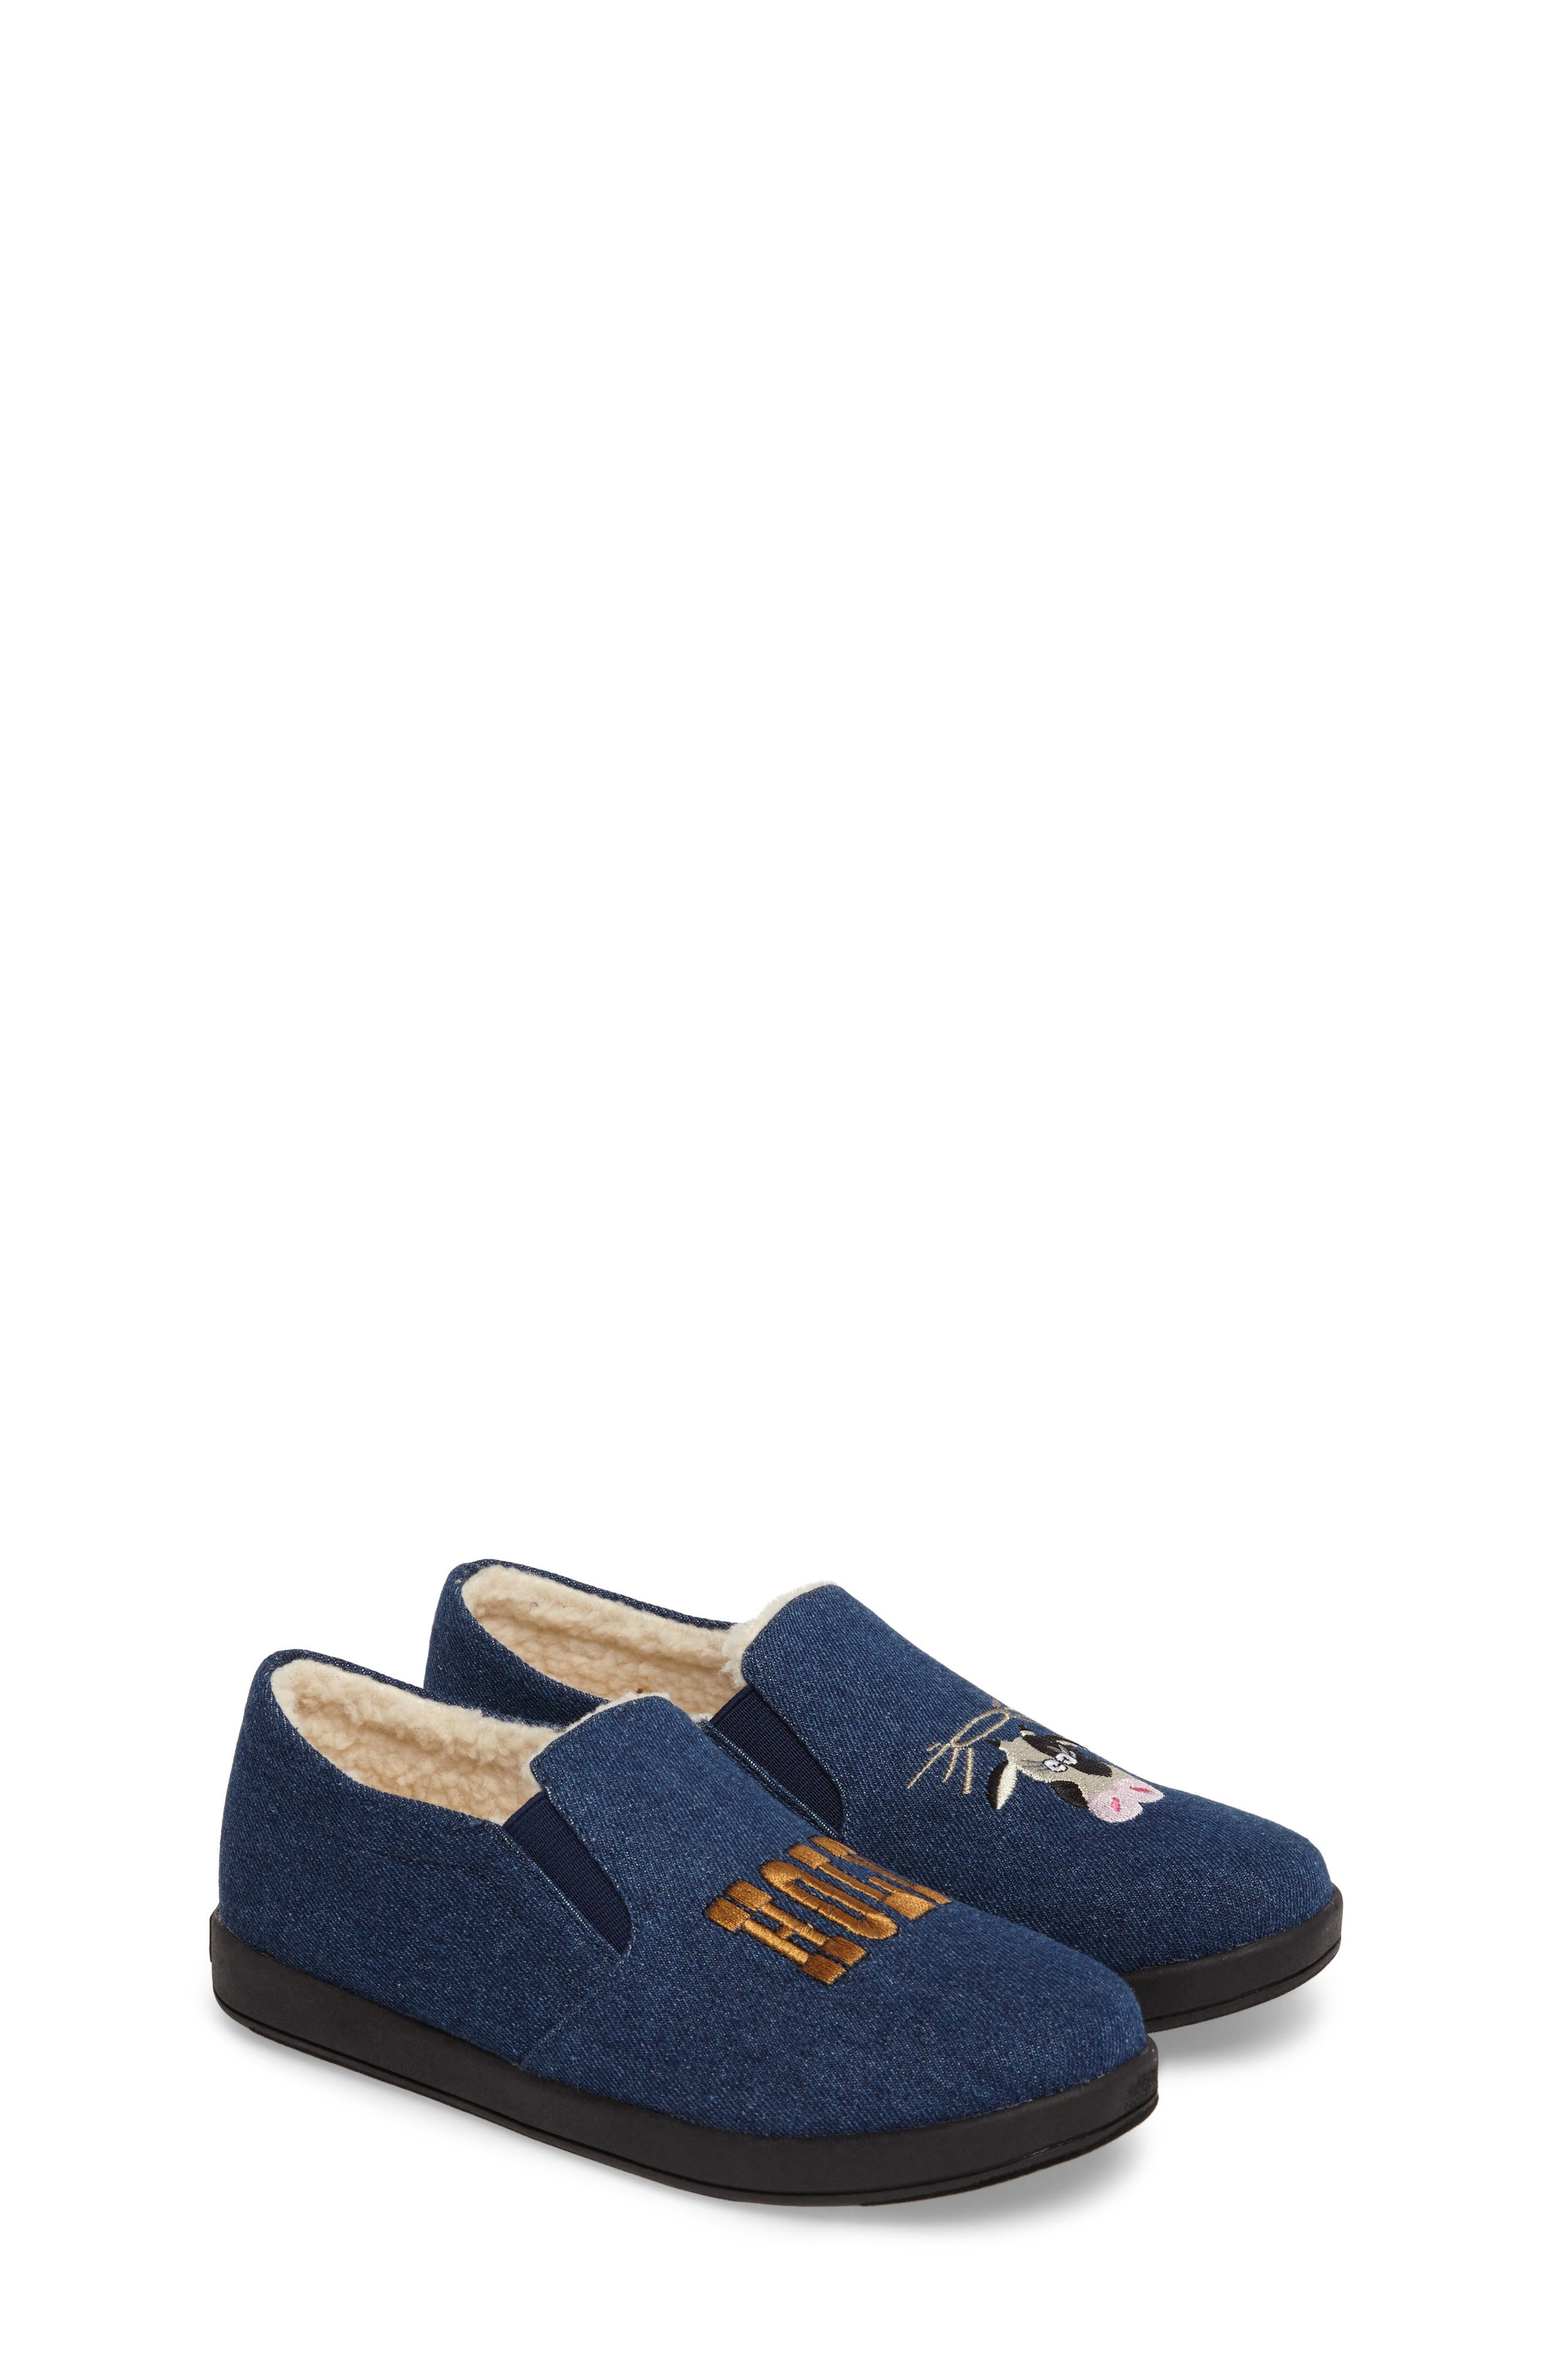 Cynthia Tala Holy Cow Embroidered Slippers,                         Main,                         color, 400